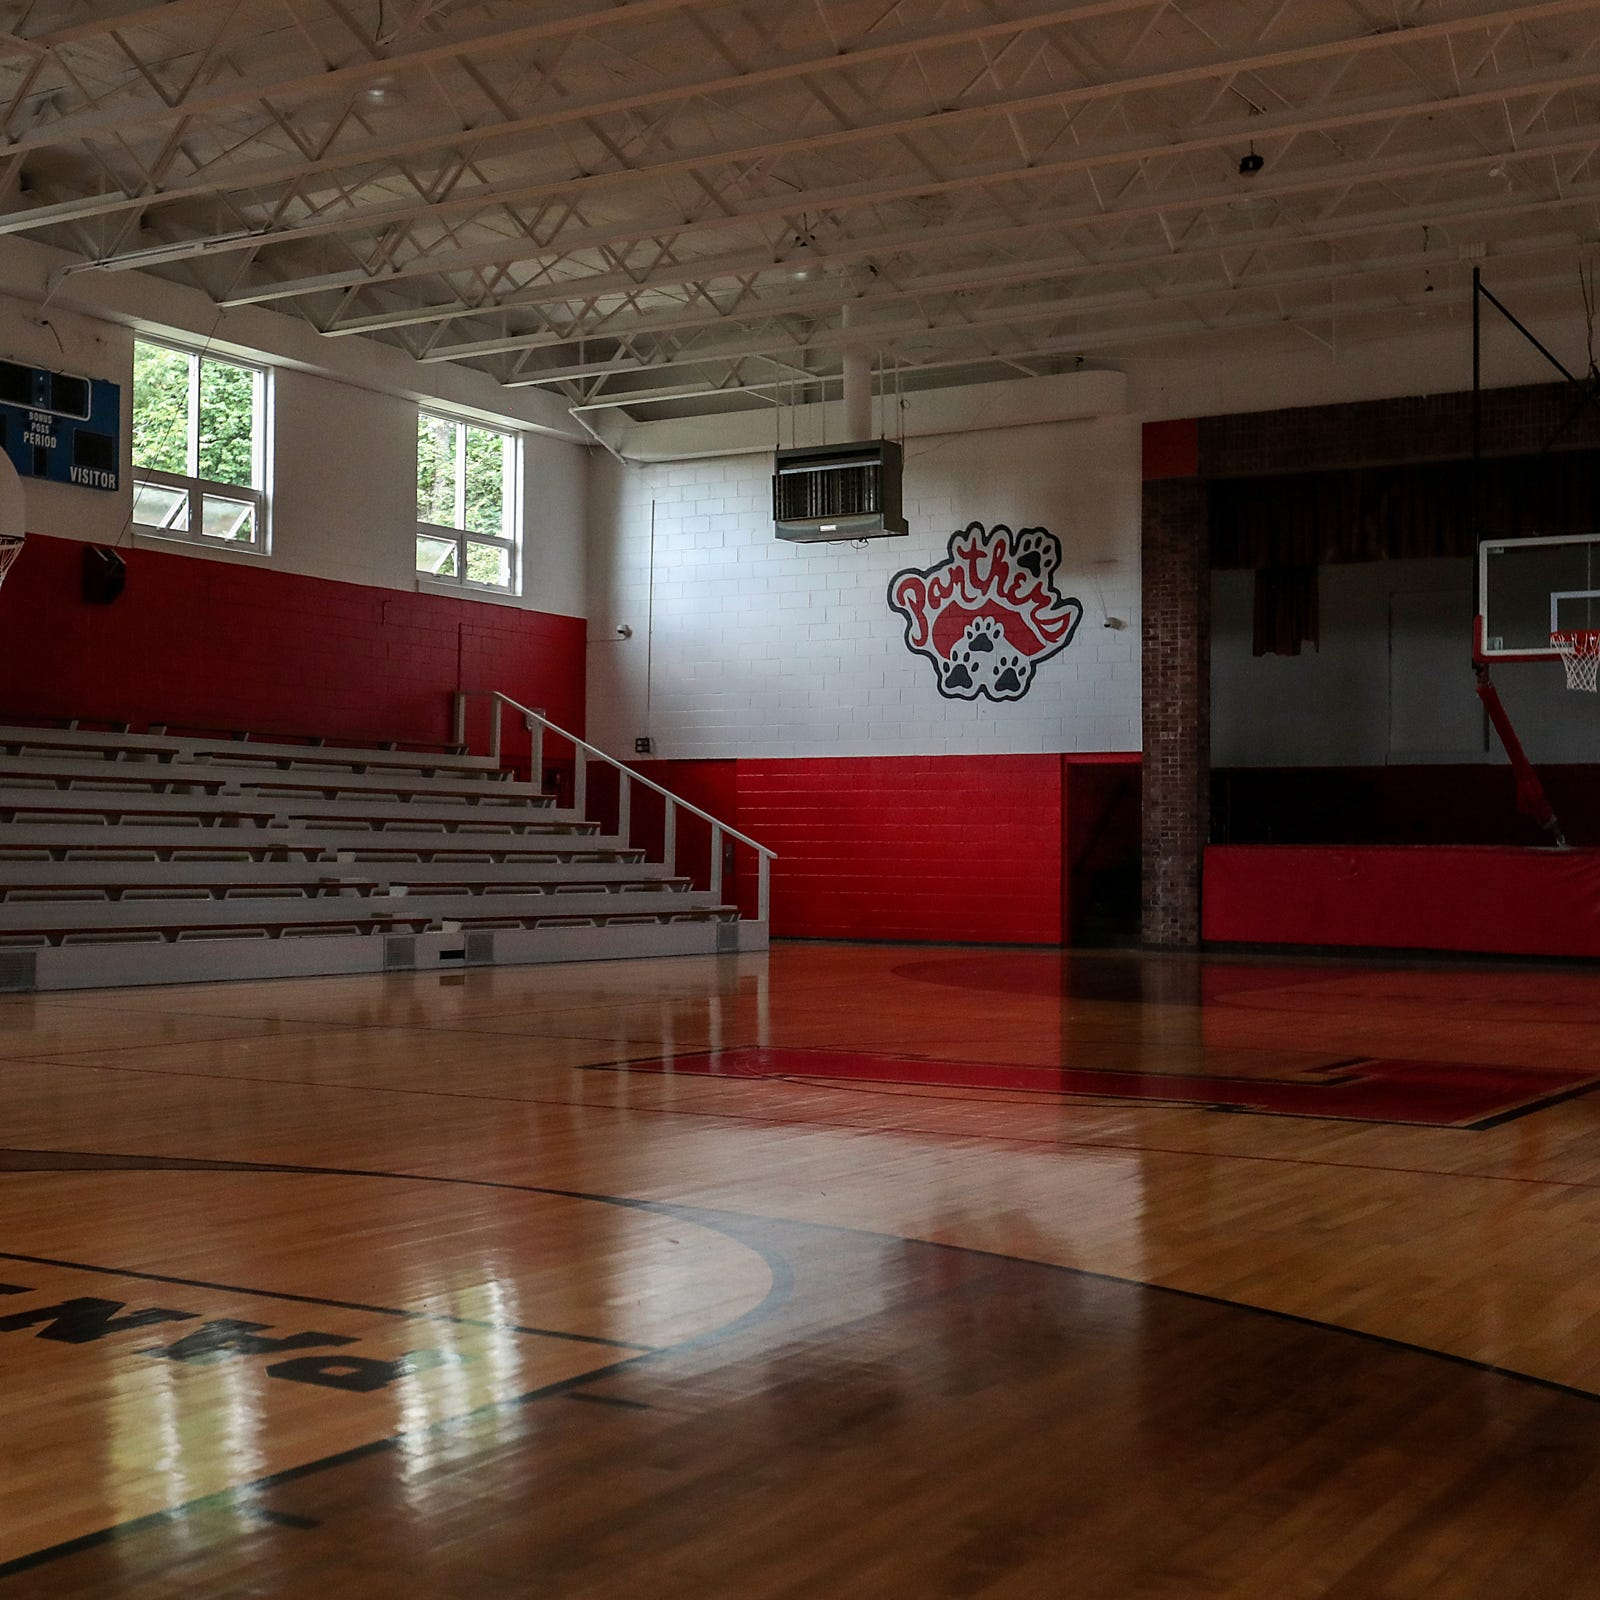 Doyel: Can the basketball gym of a long-closed high school save Laurel, Ind.?